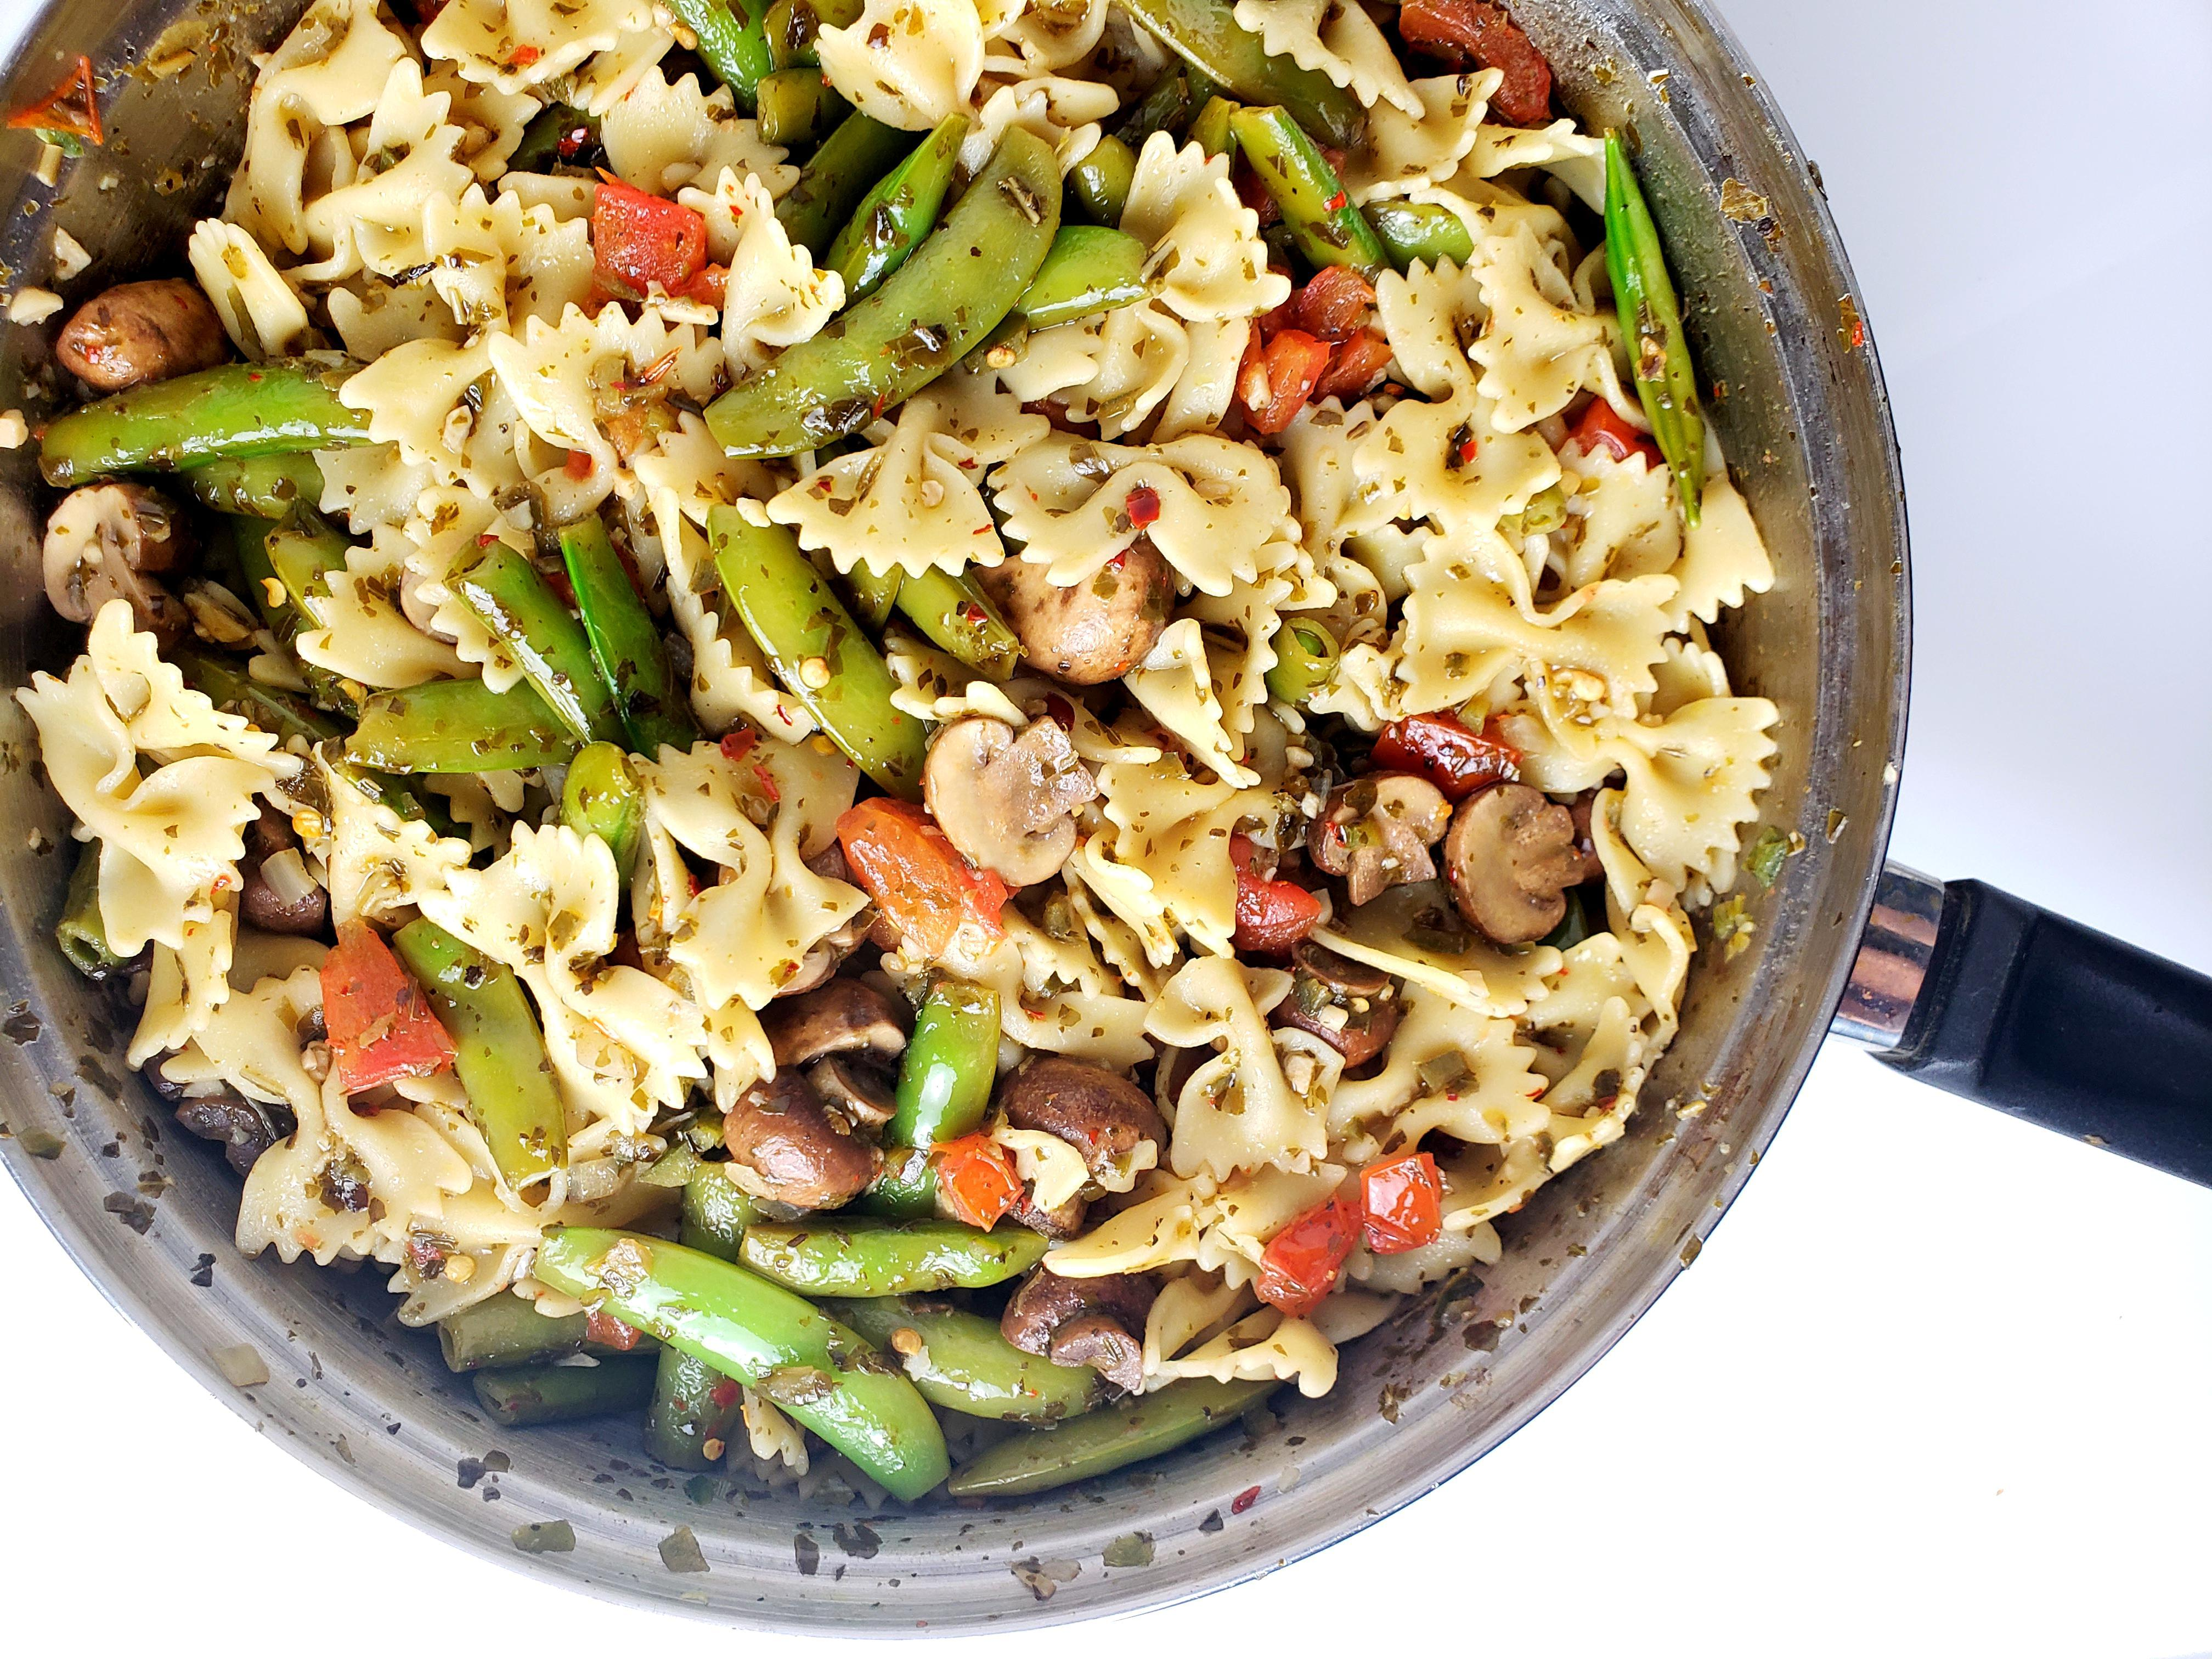 Pan with firecracker bowtie pasta and vegetables